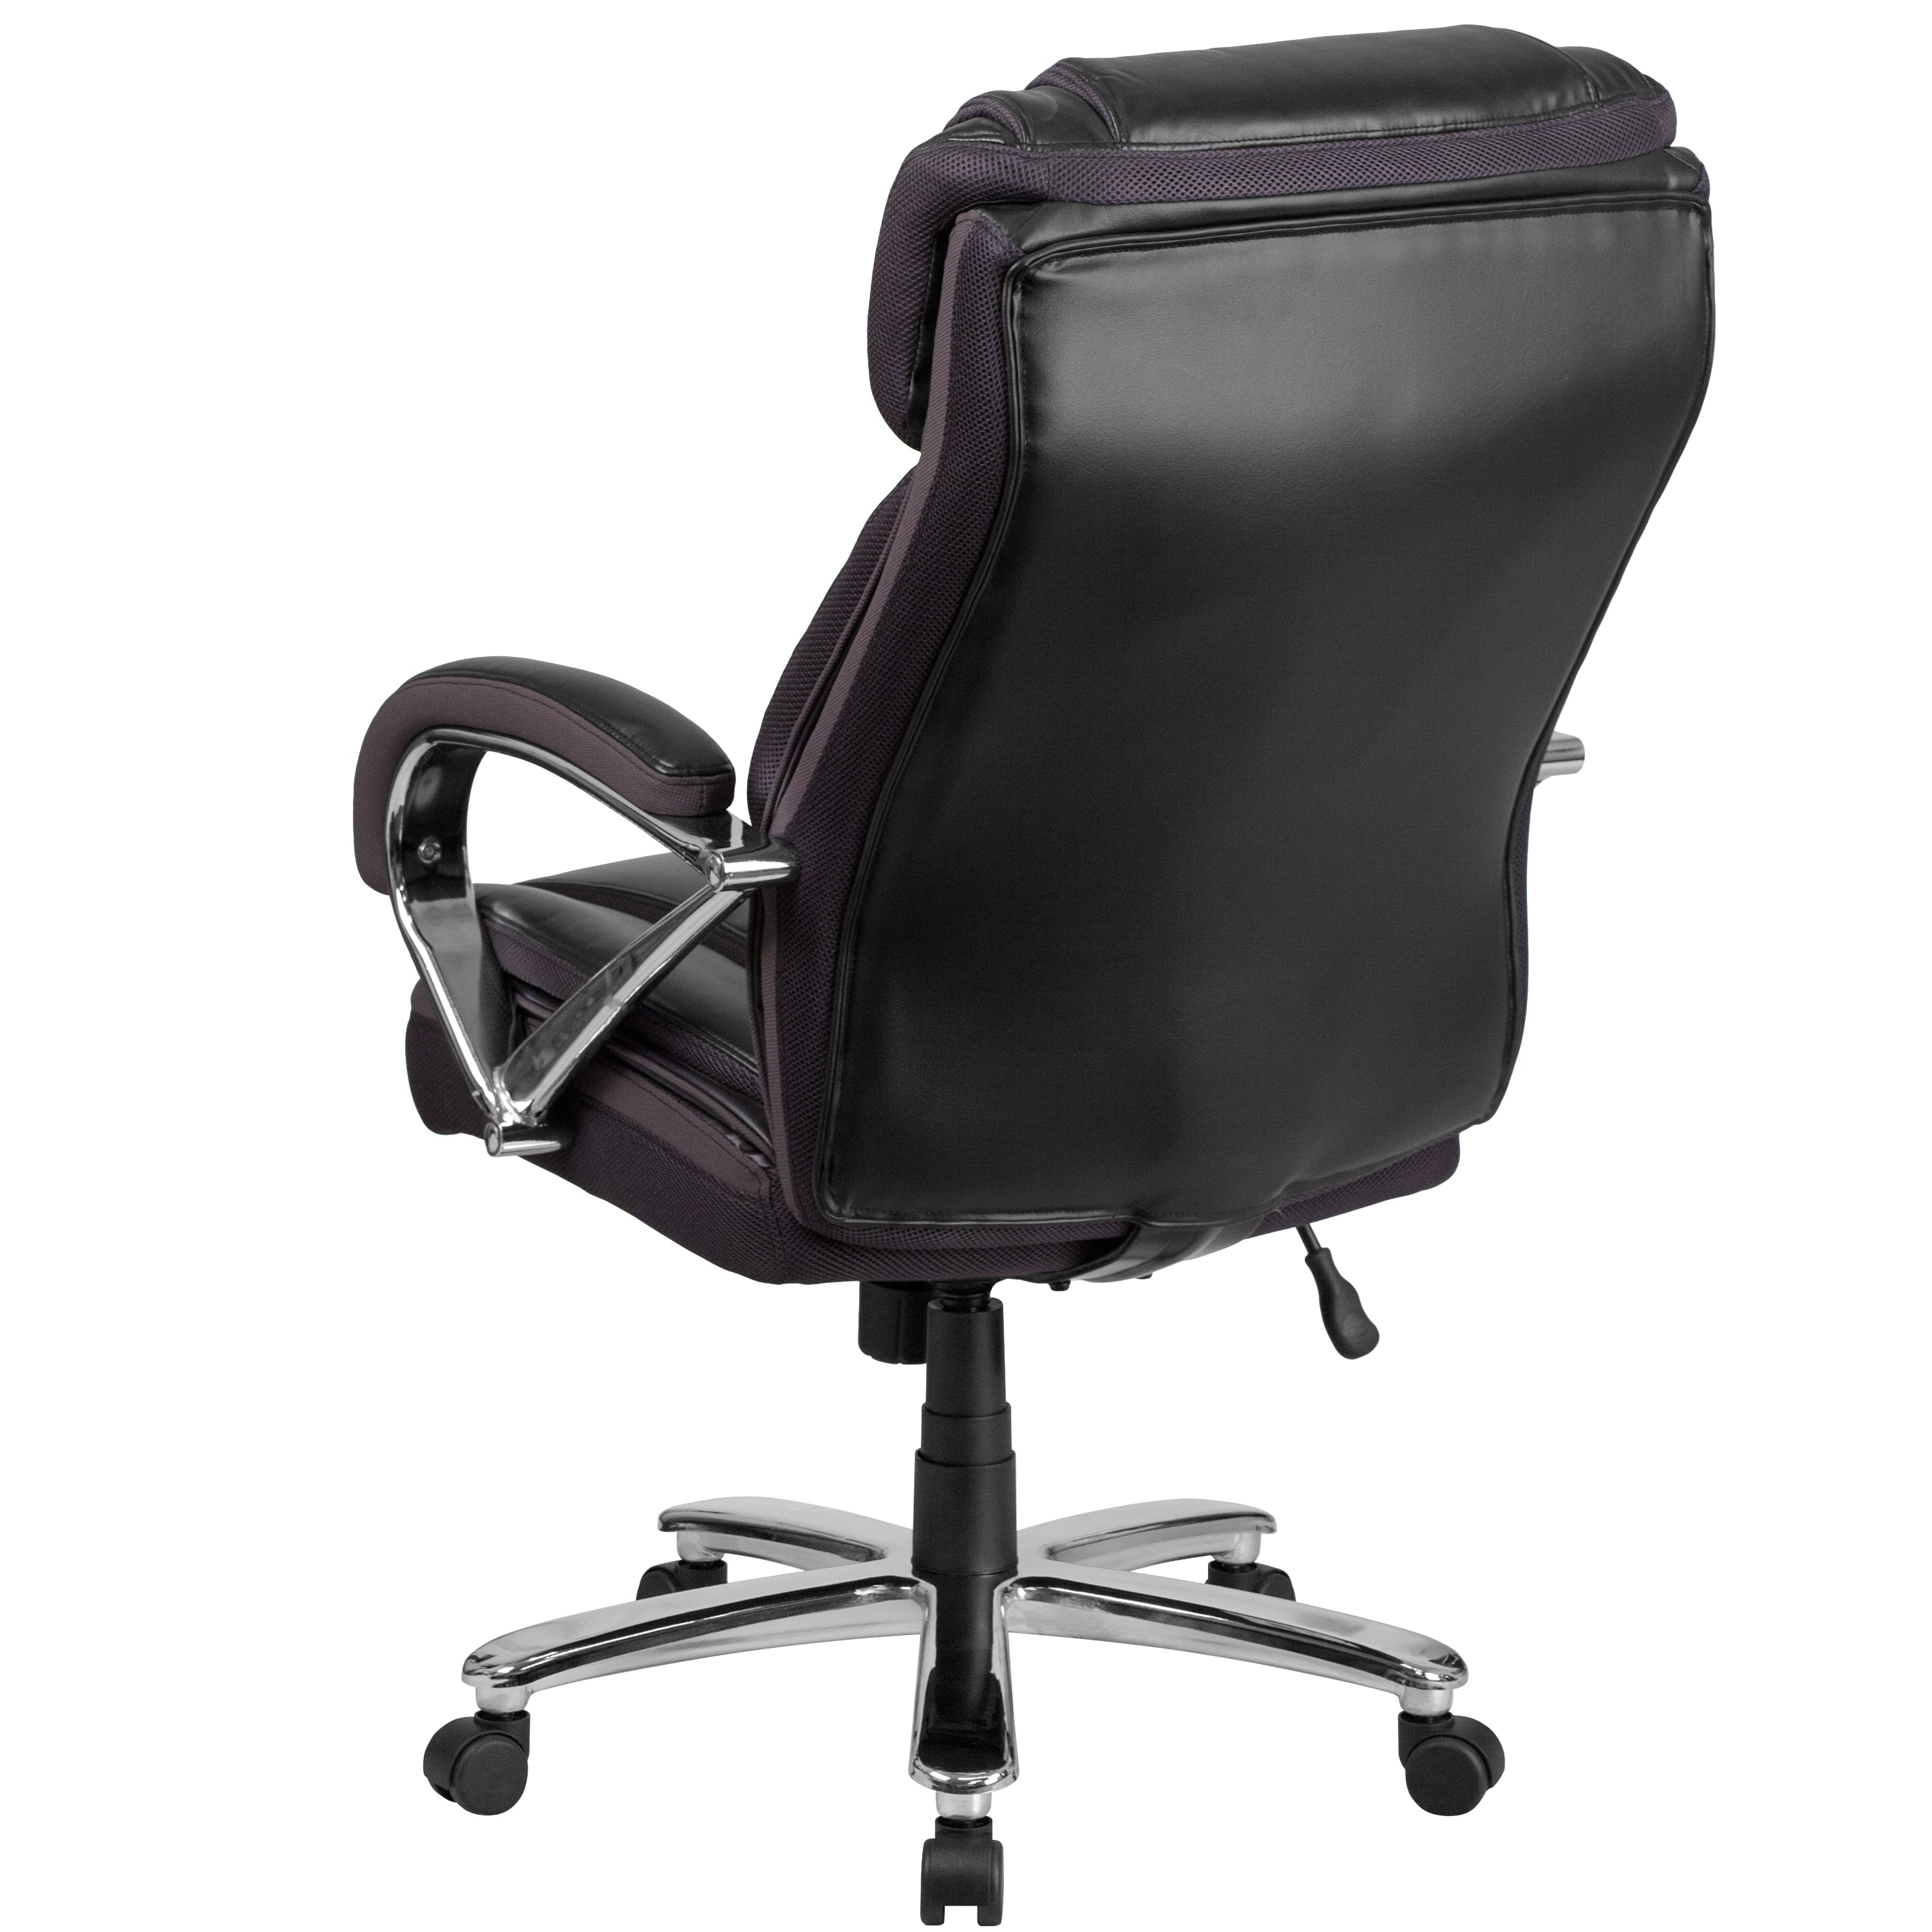 Big /& Tall Black Leather Executive Office Chair Extra Wide Seat 500 Lbs Capacity